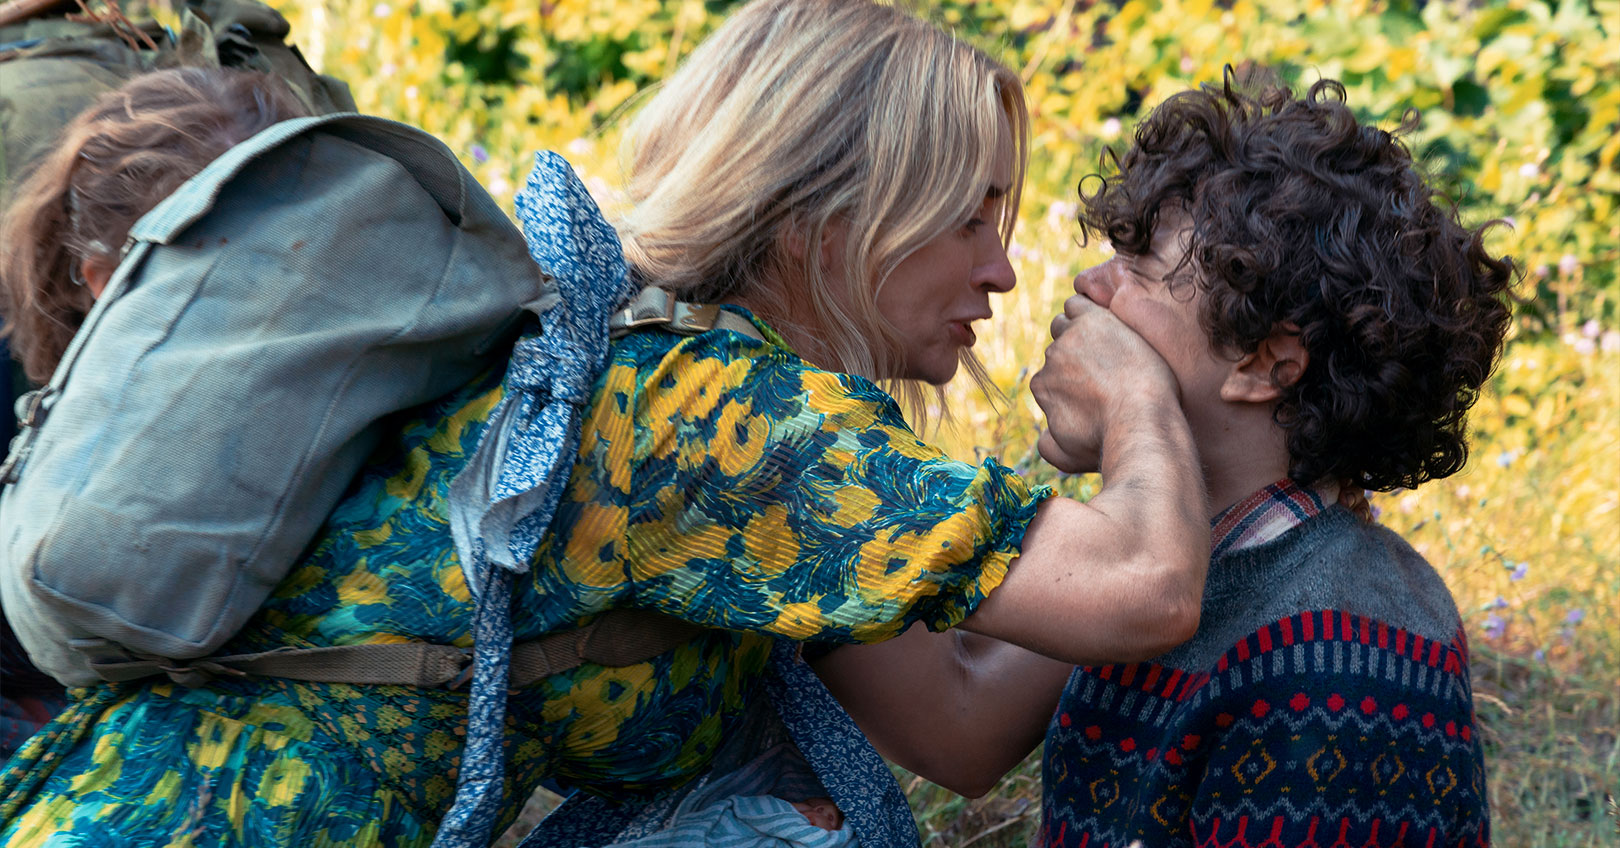 A Quiet Place Part II - Emily Blunt and Noah Jupe